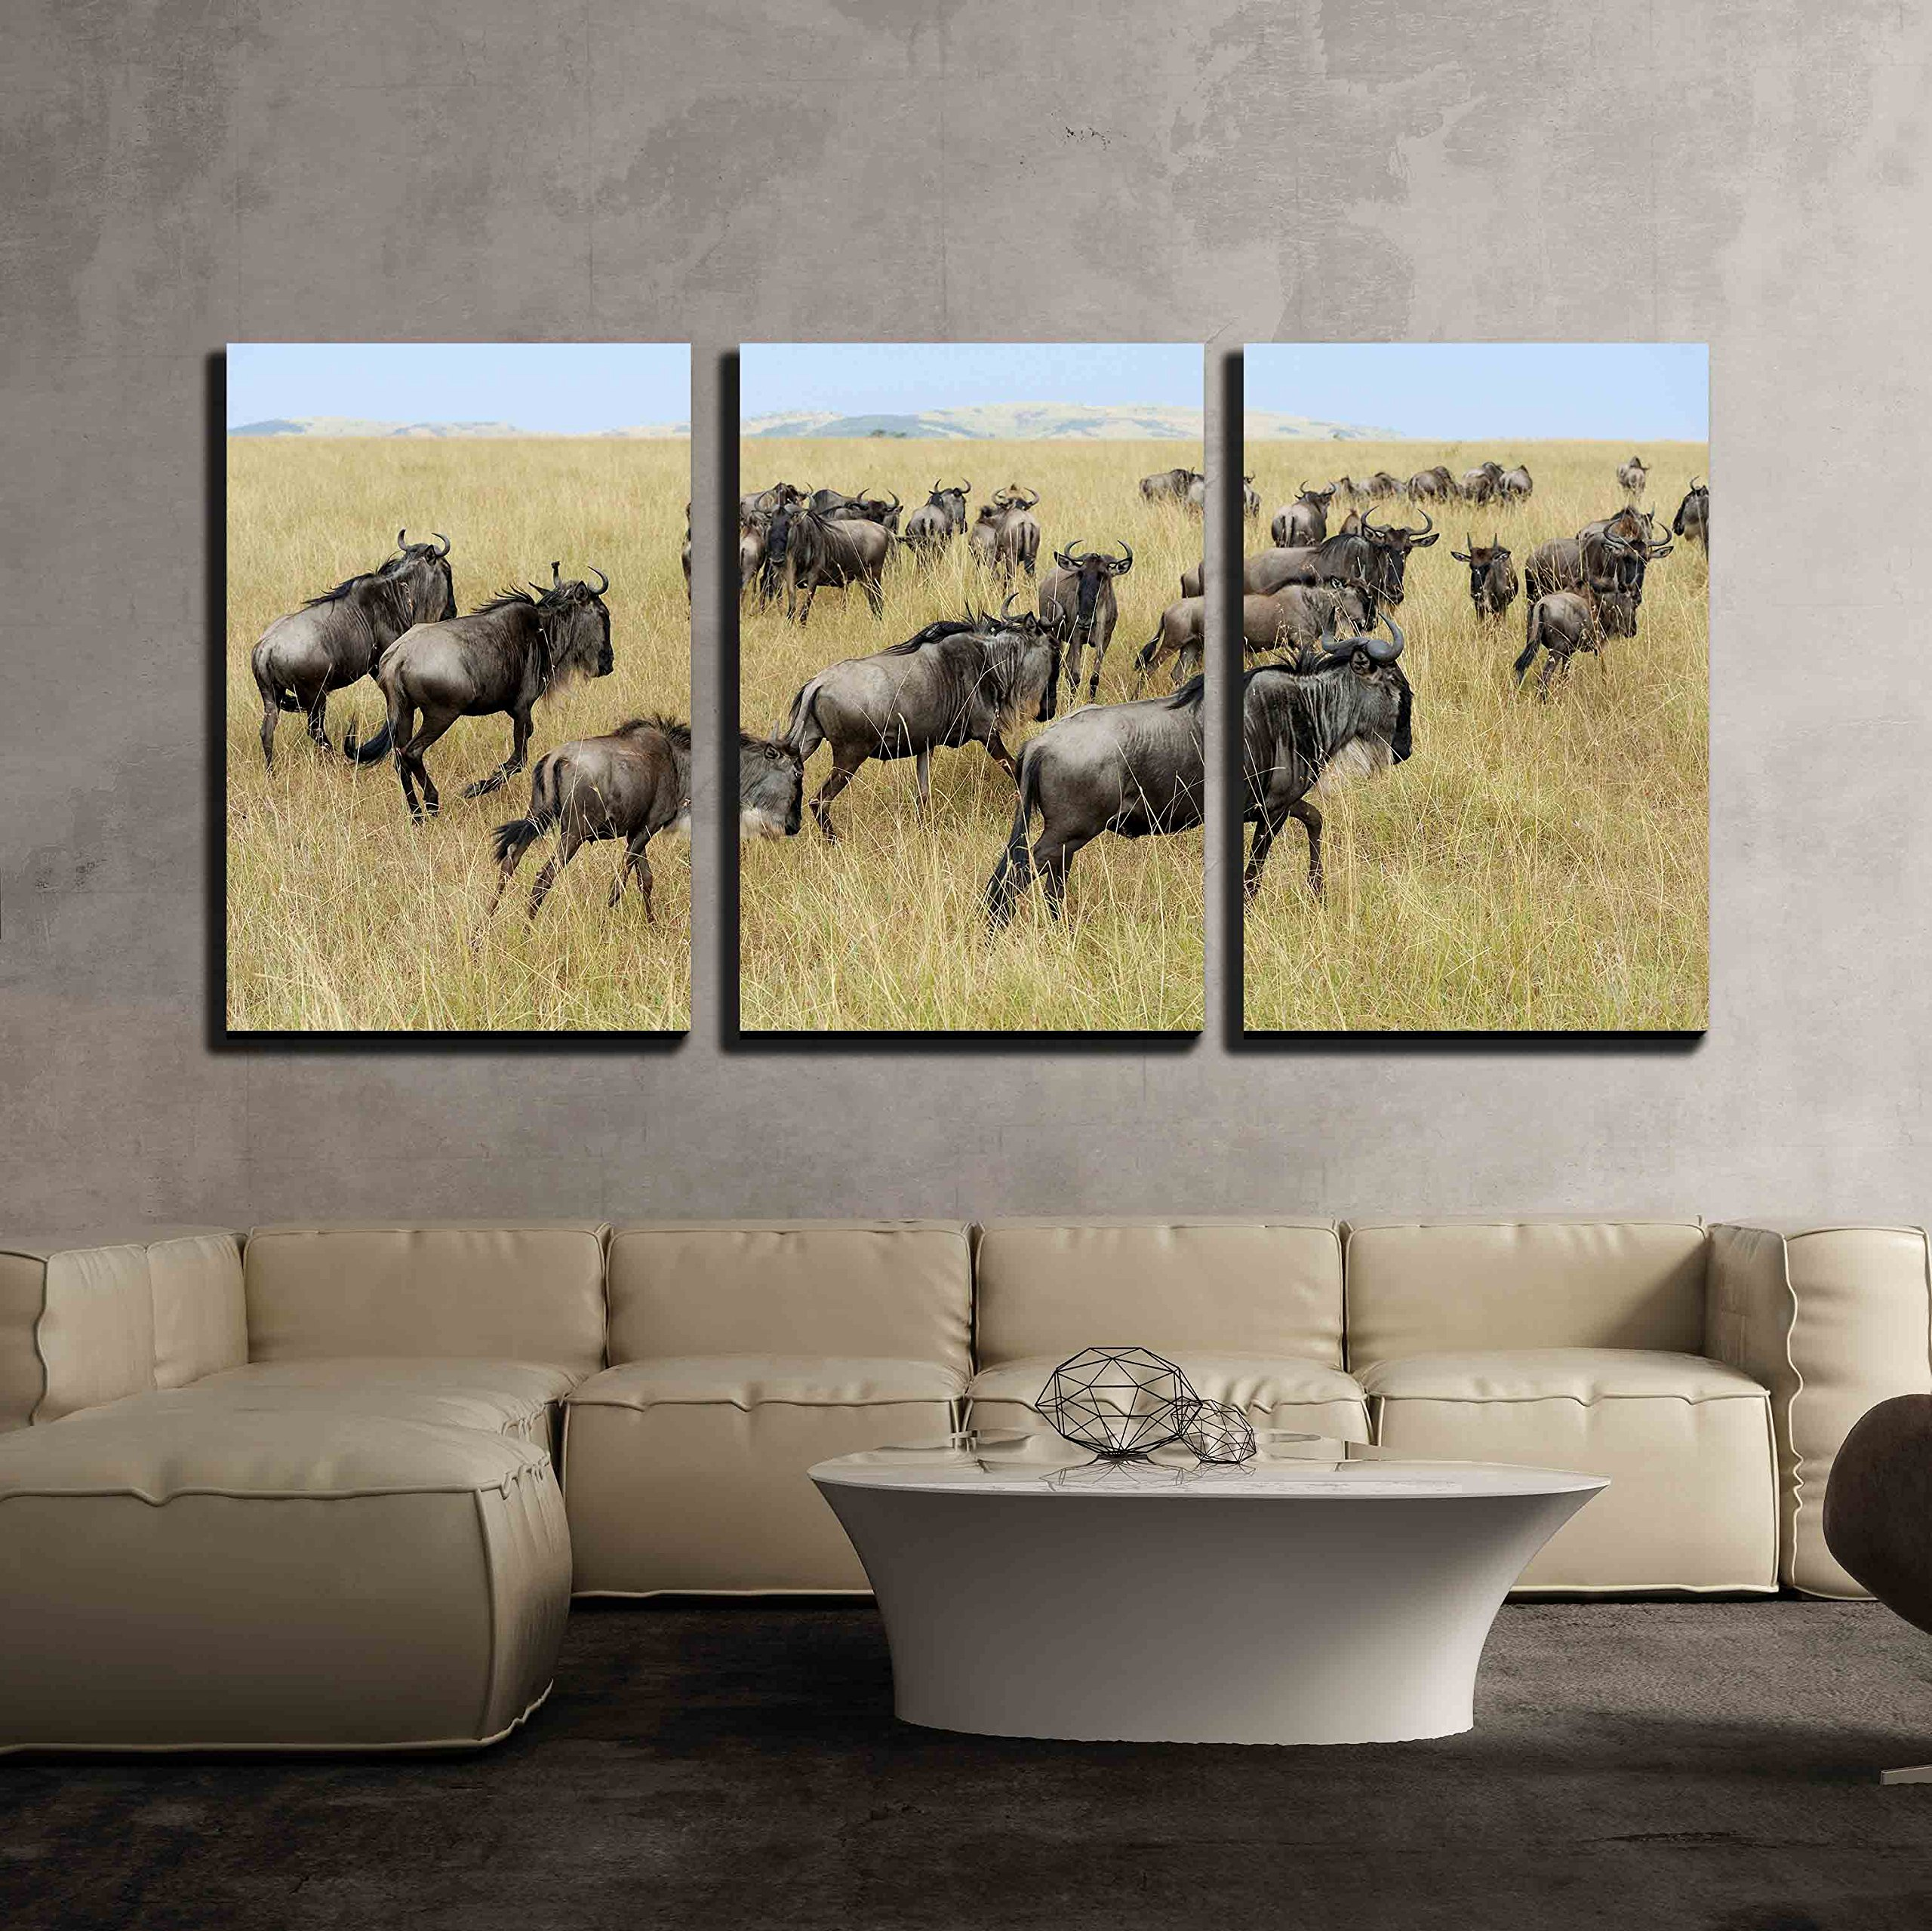 """wall26 3 Piece Canvas Wall Art - Wildebeest in National Park of Kenya, Africa - Modern Home Art Stretched and Framed Ready to Hang - 16""""x24""""x3 Panels"""